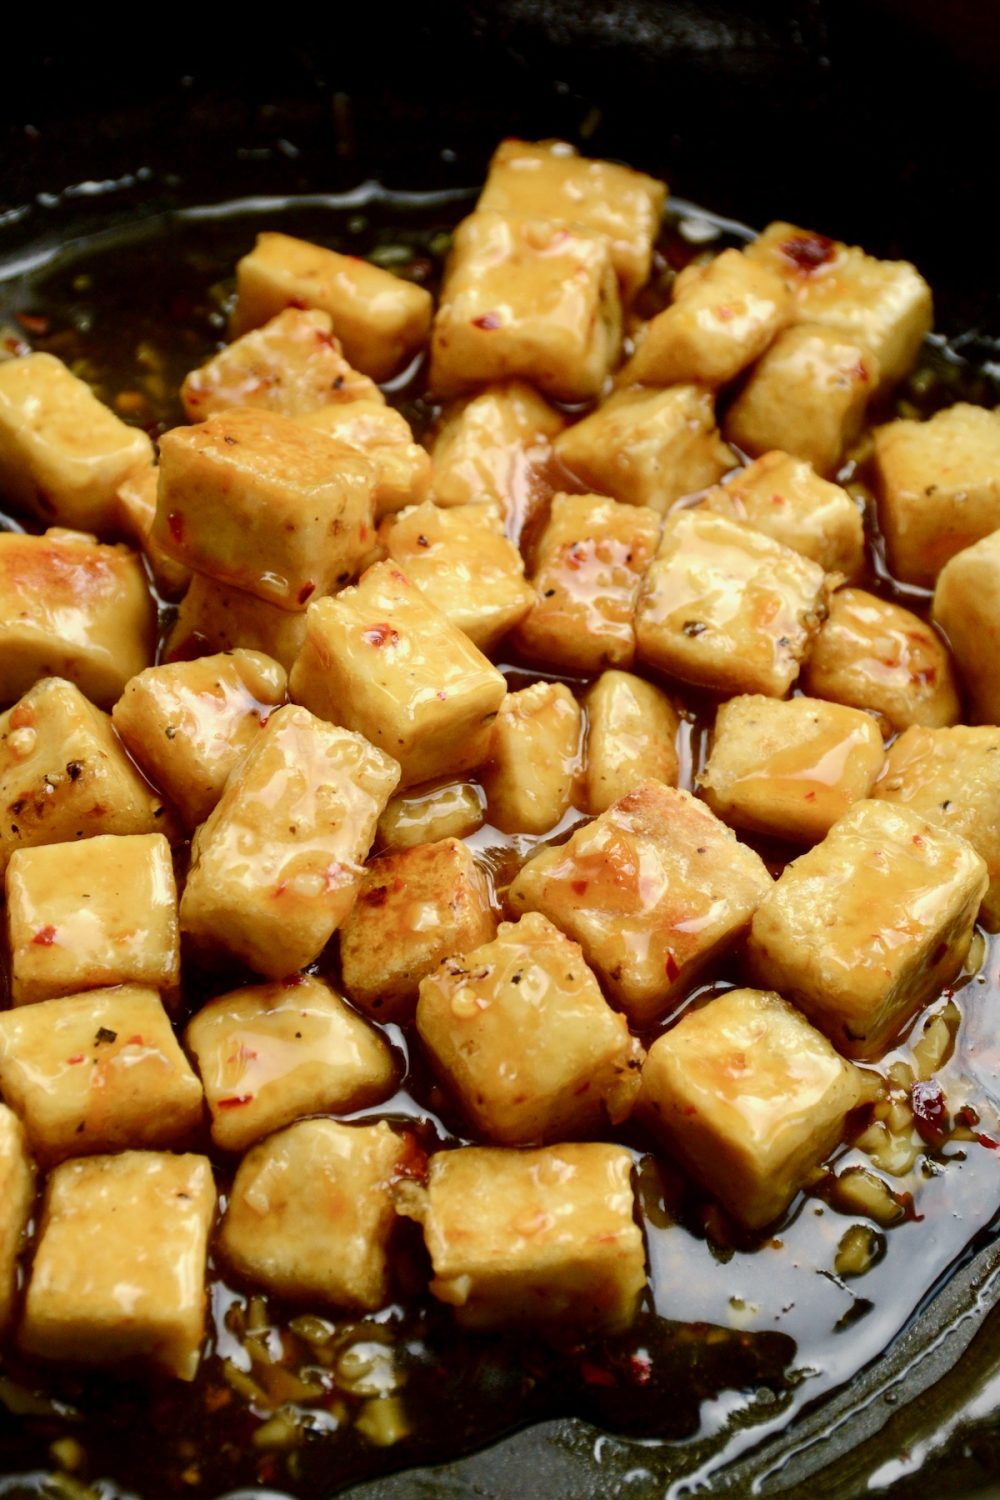 The fried tofu cubes have been added back into the pan and coated in the orange sauce.